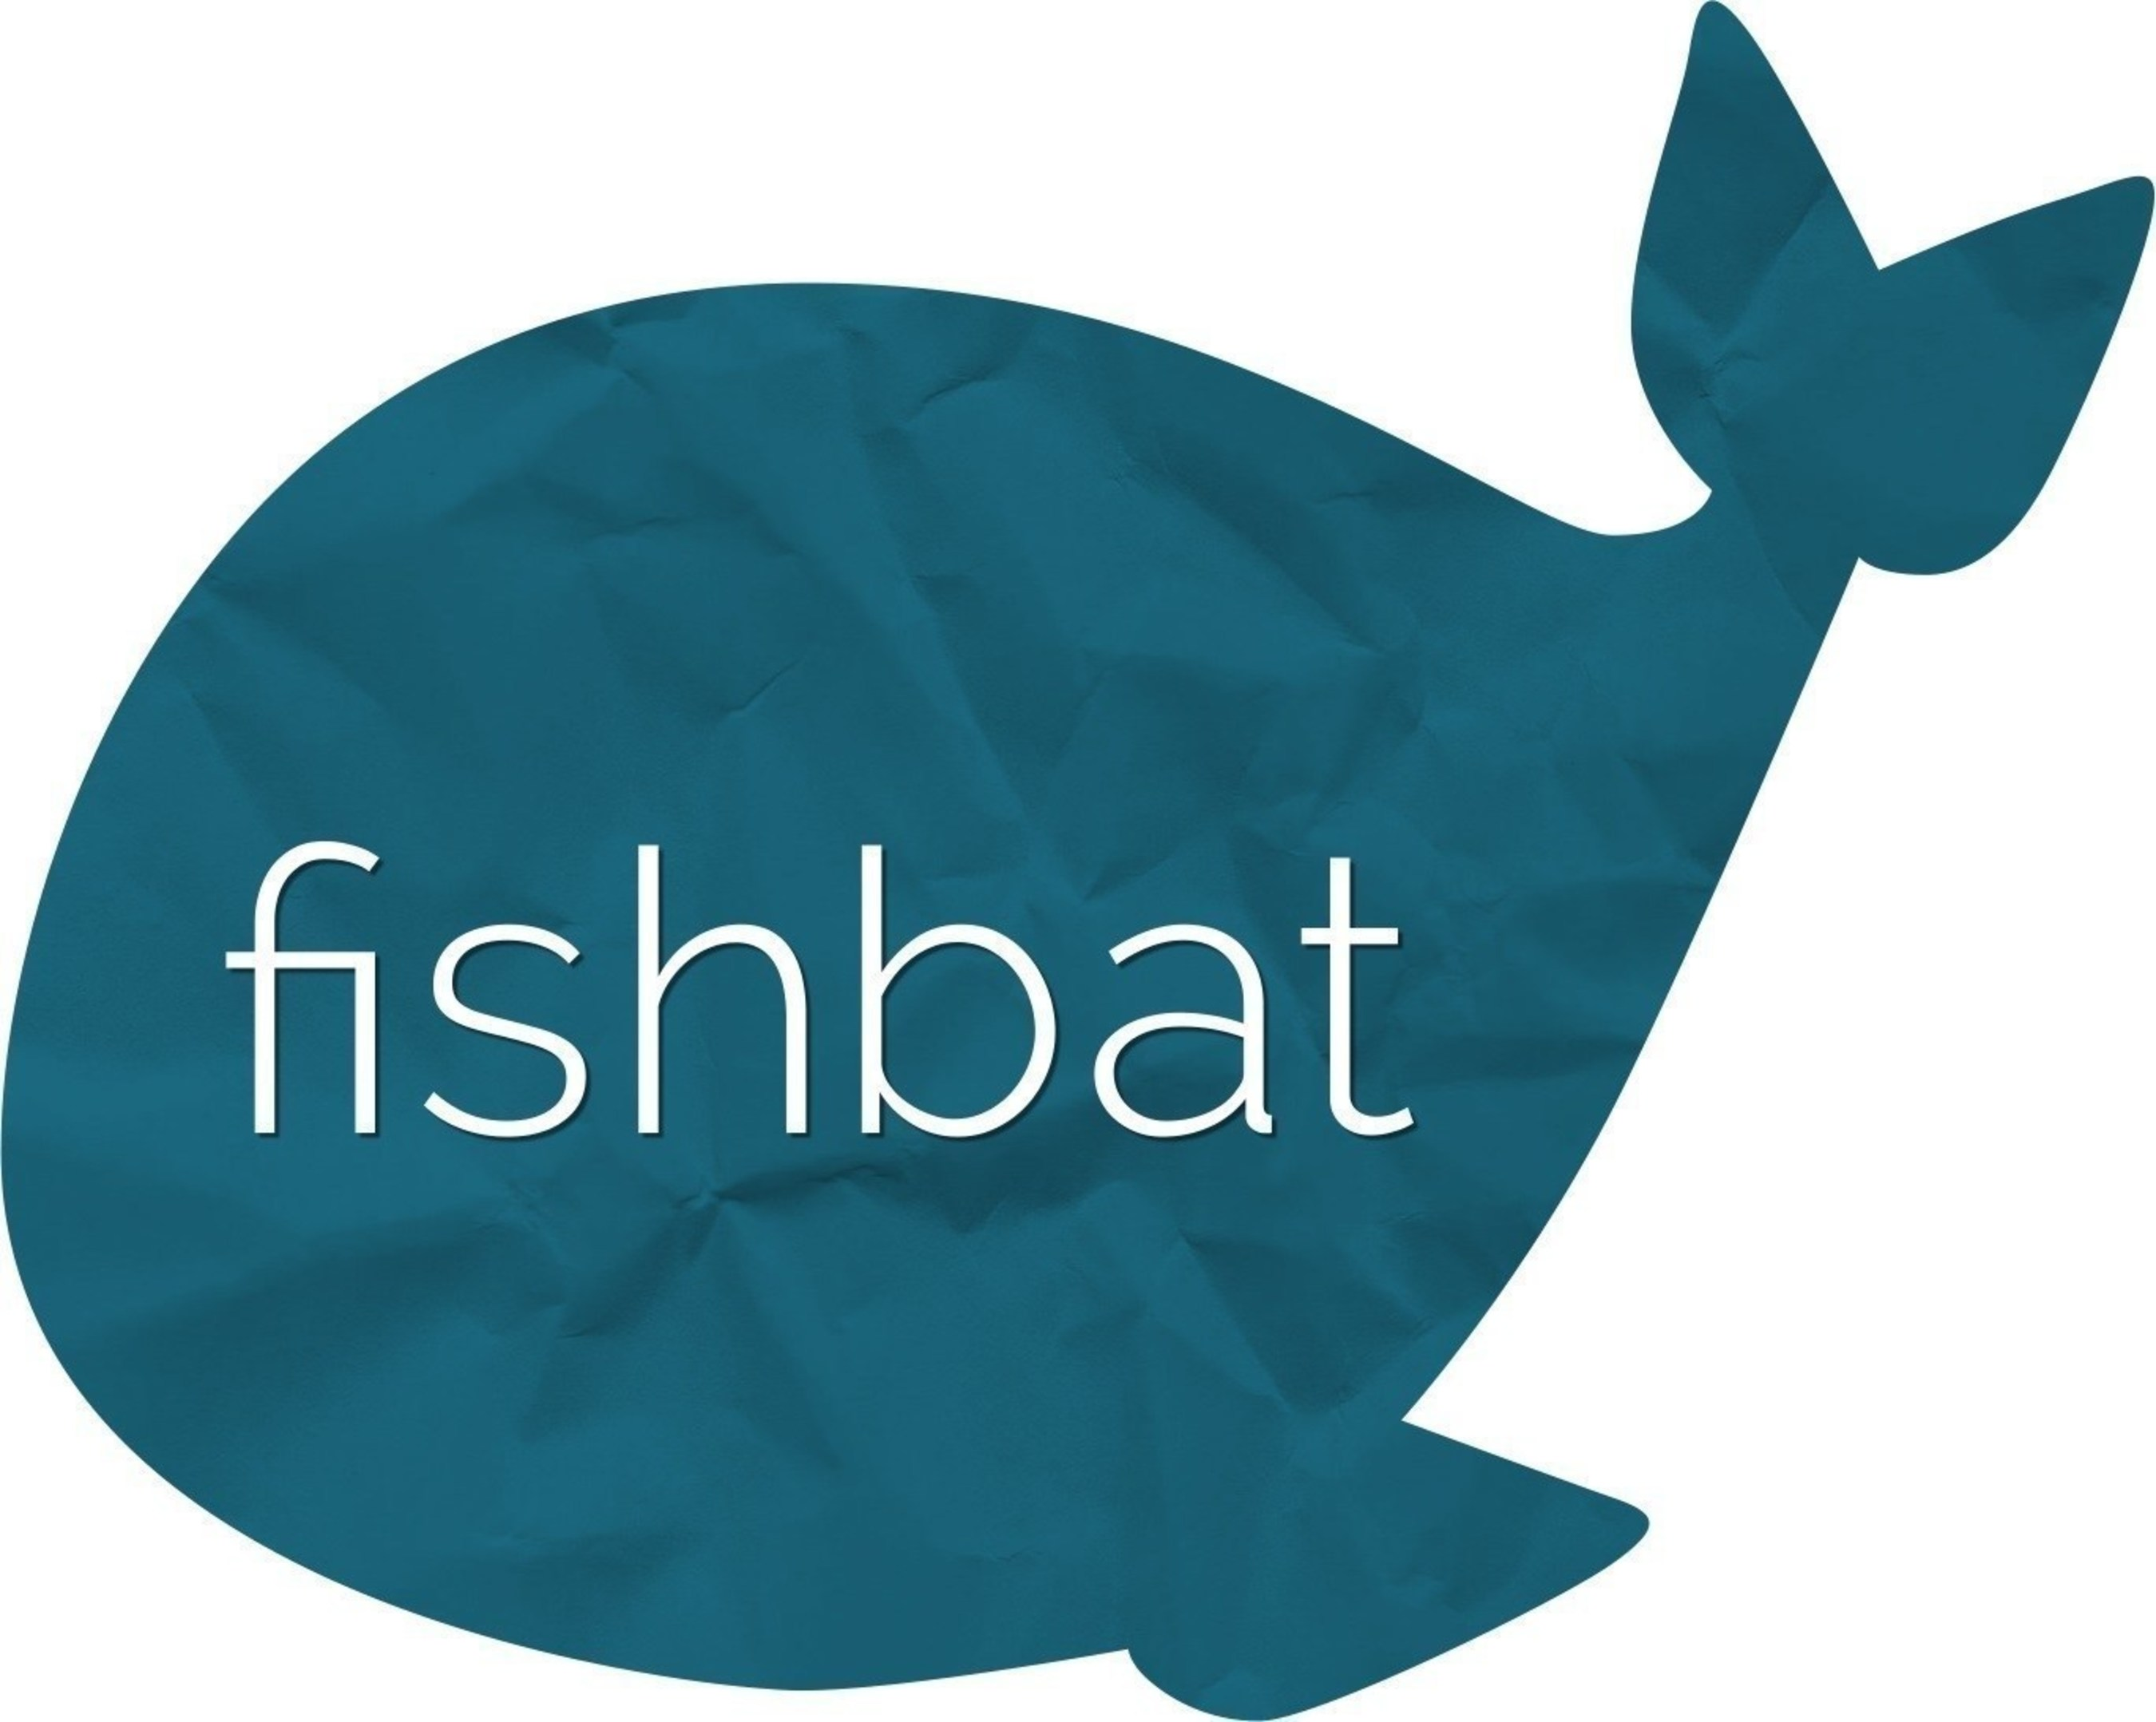 fishbat Shares 3 Ways Boat Shipping Companies Can Make an Impact on Facebook